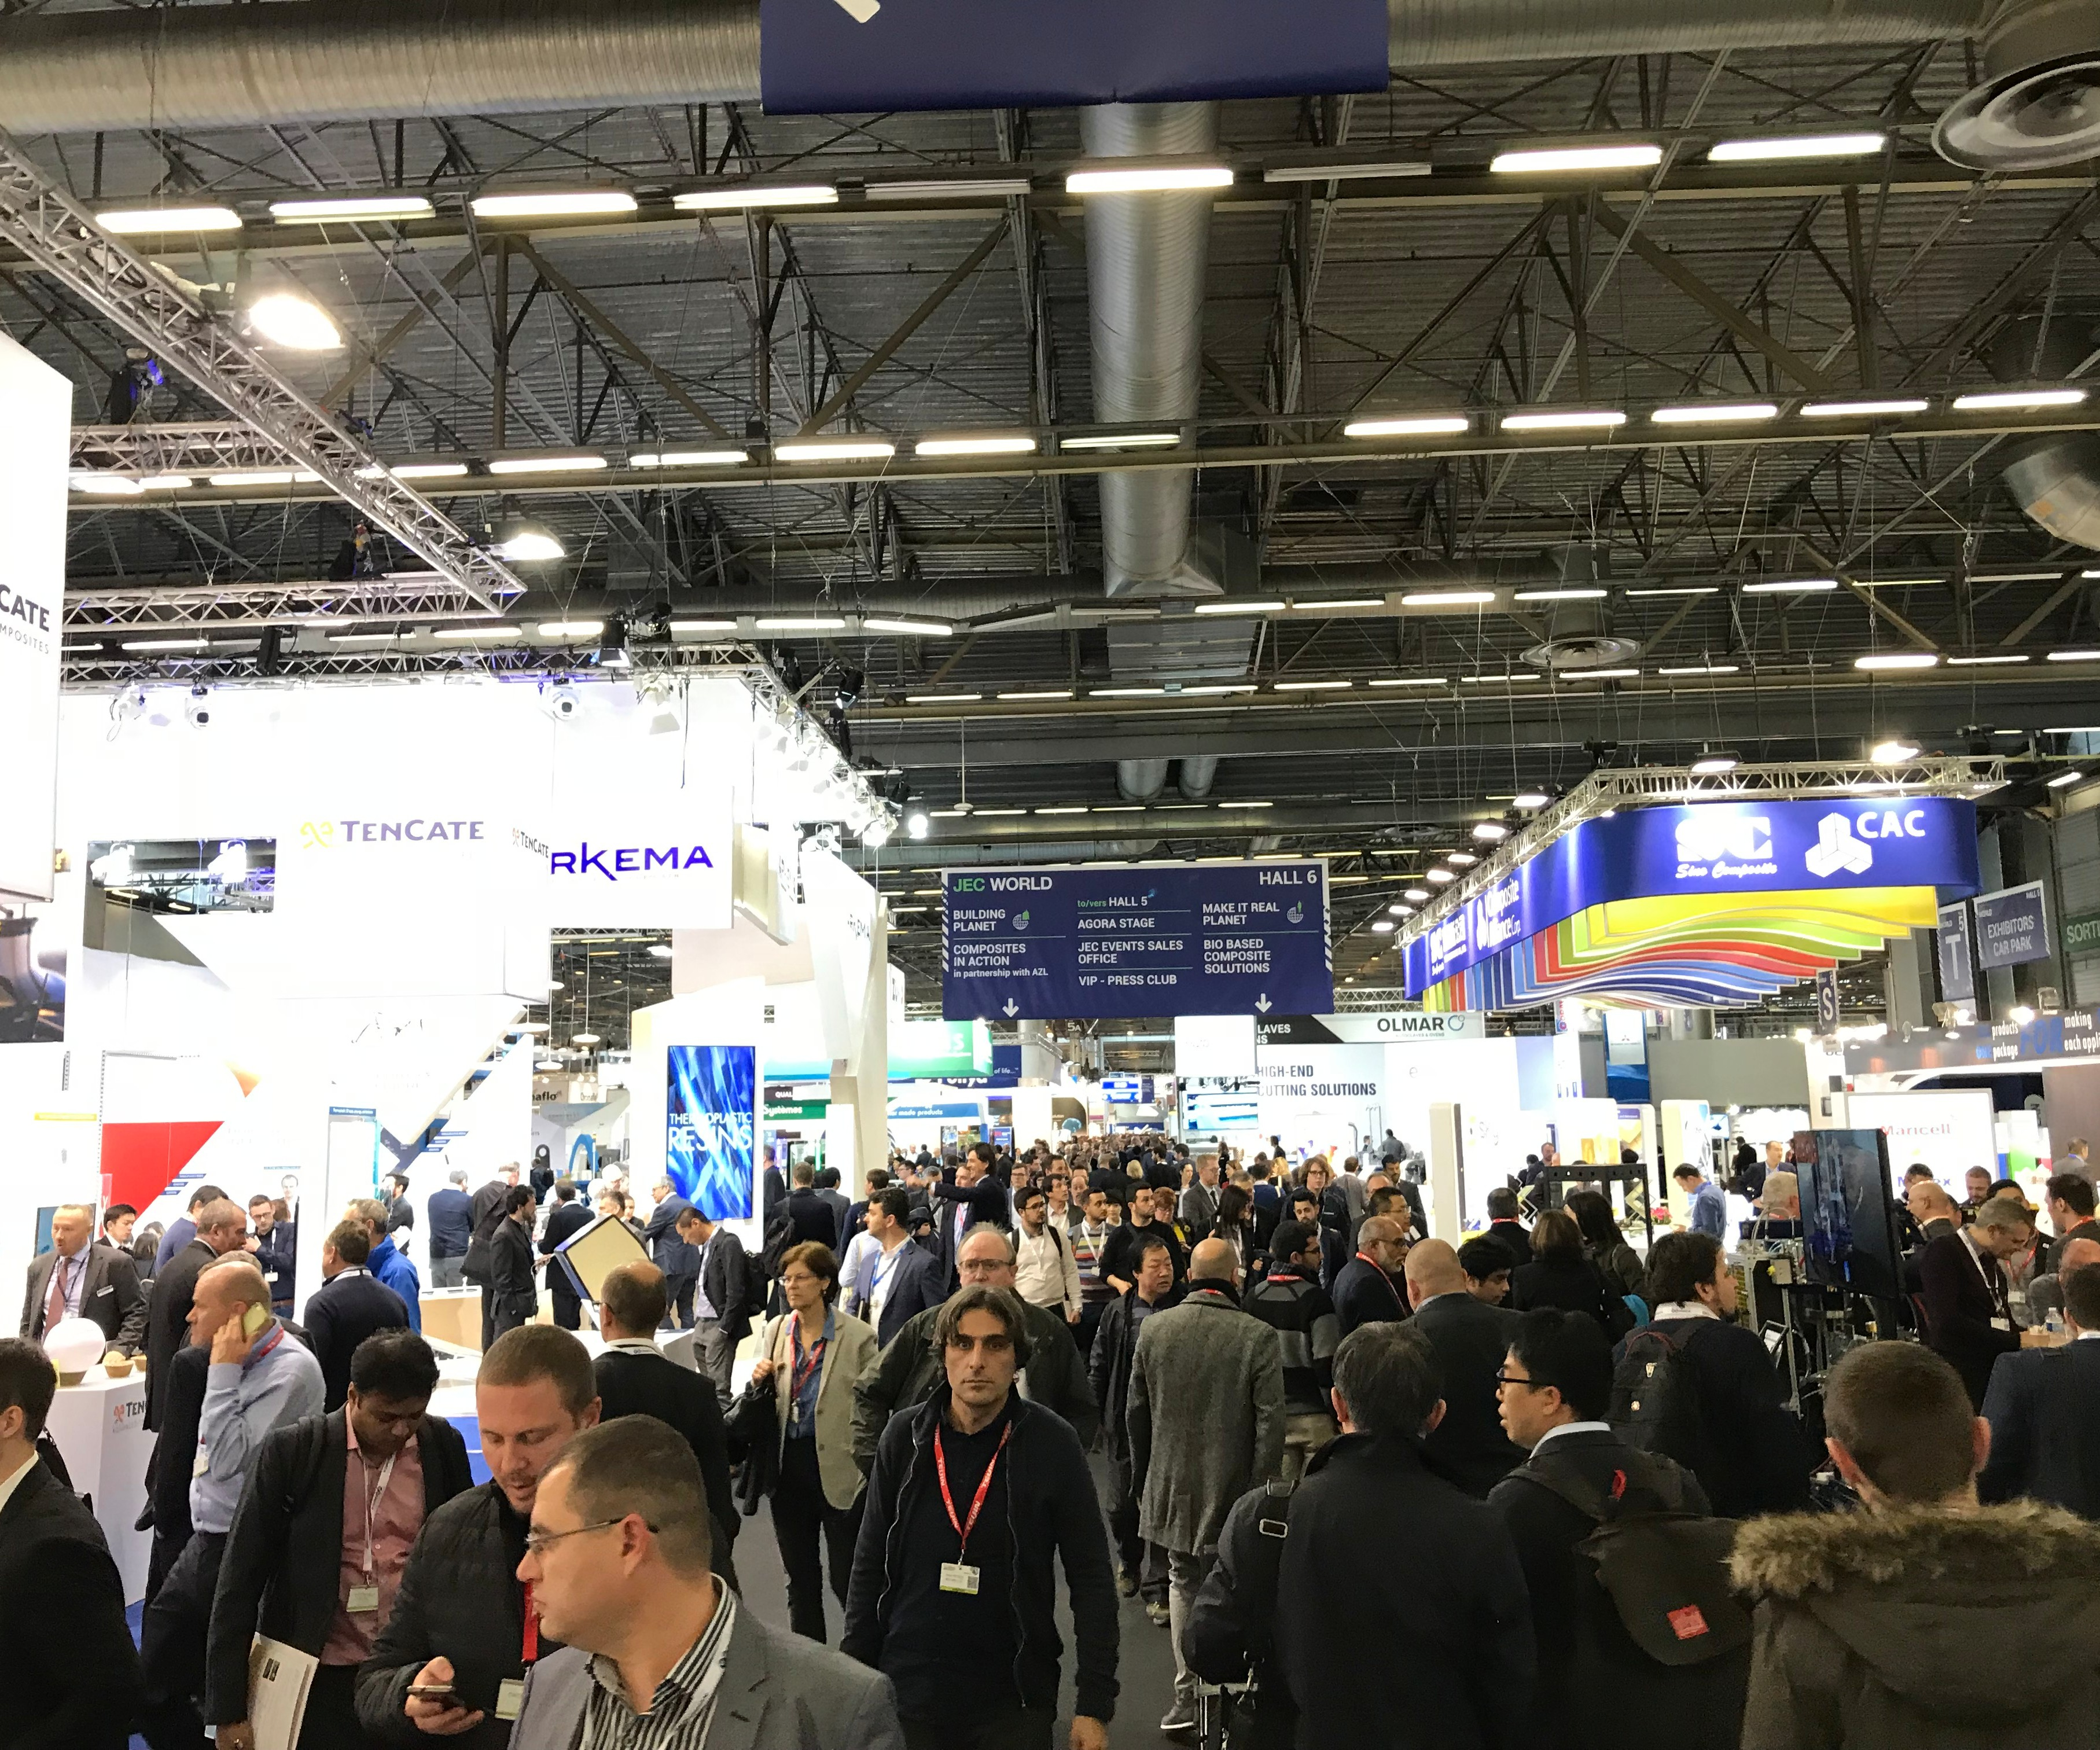 JEC World 2018 crowded aisle.